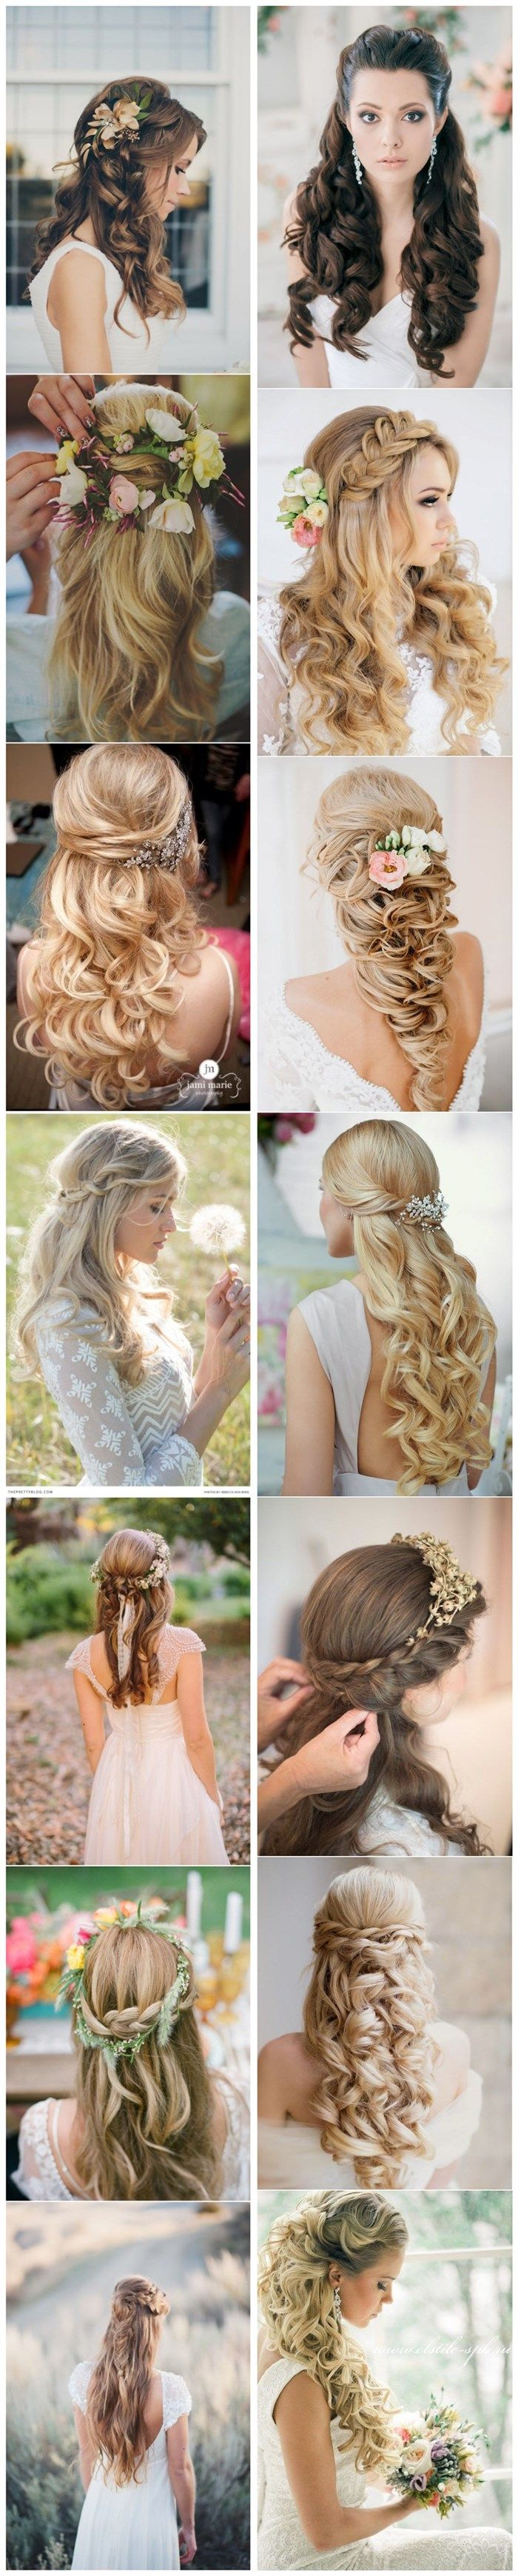 half up half down wedding hairstyles / http://www.deerpearlflowers.com/15-stunning-half-up-half-down-wedding-hairstyles-with-tutorial/3/